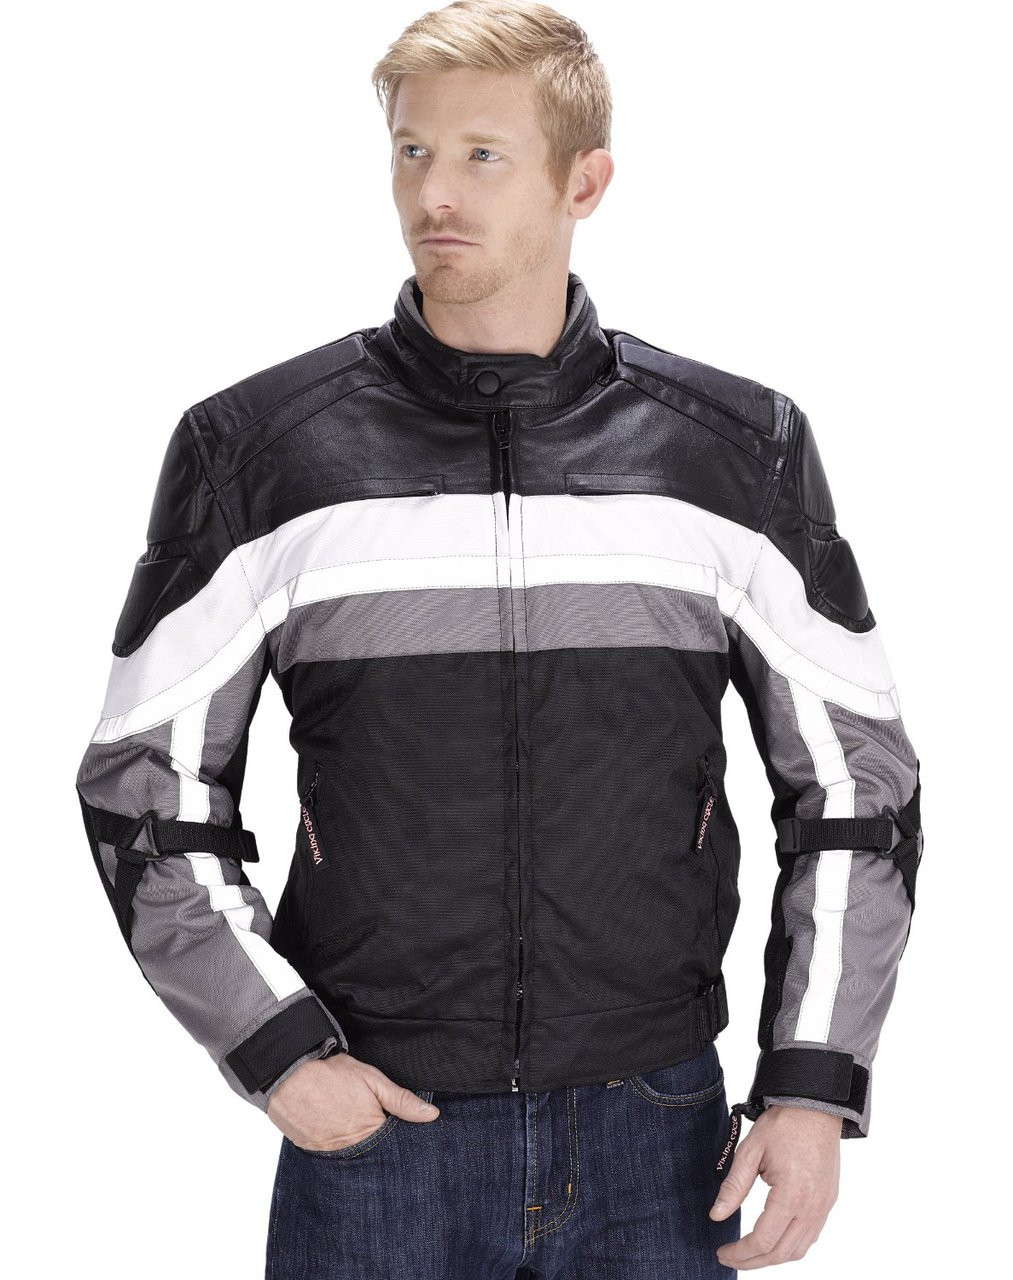 viking cycle hammer motorcycle jacket for men motorcycle